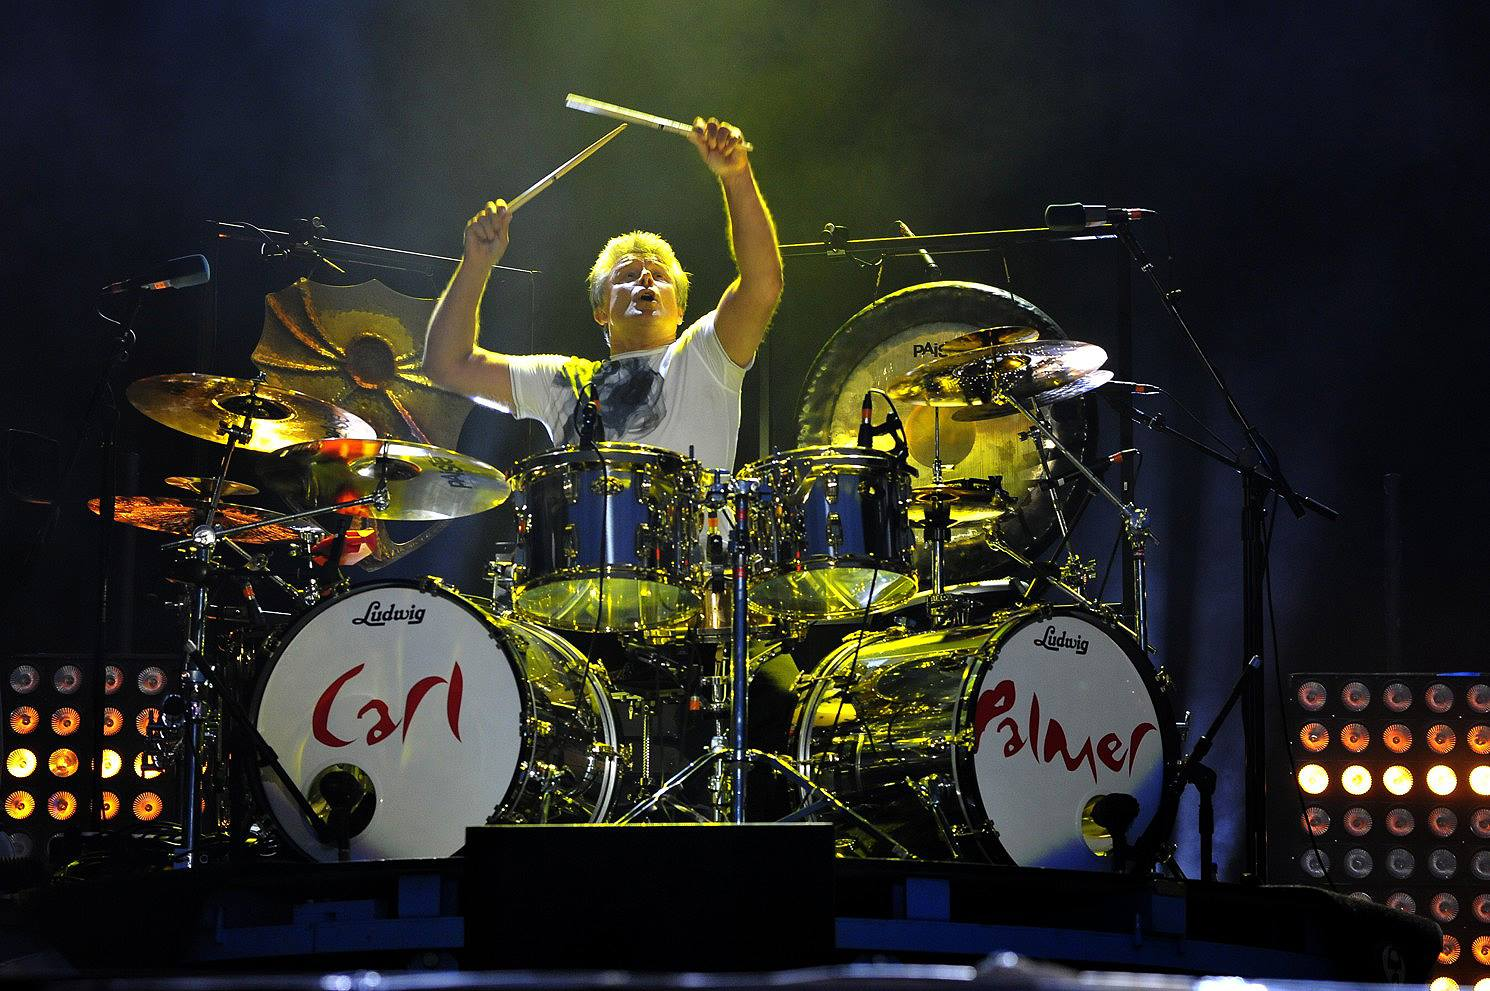 Carl Palmer - Emerson, Lake & Palmer